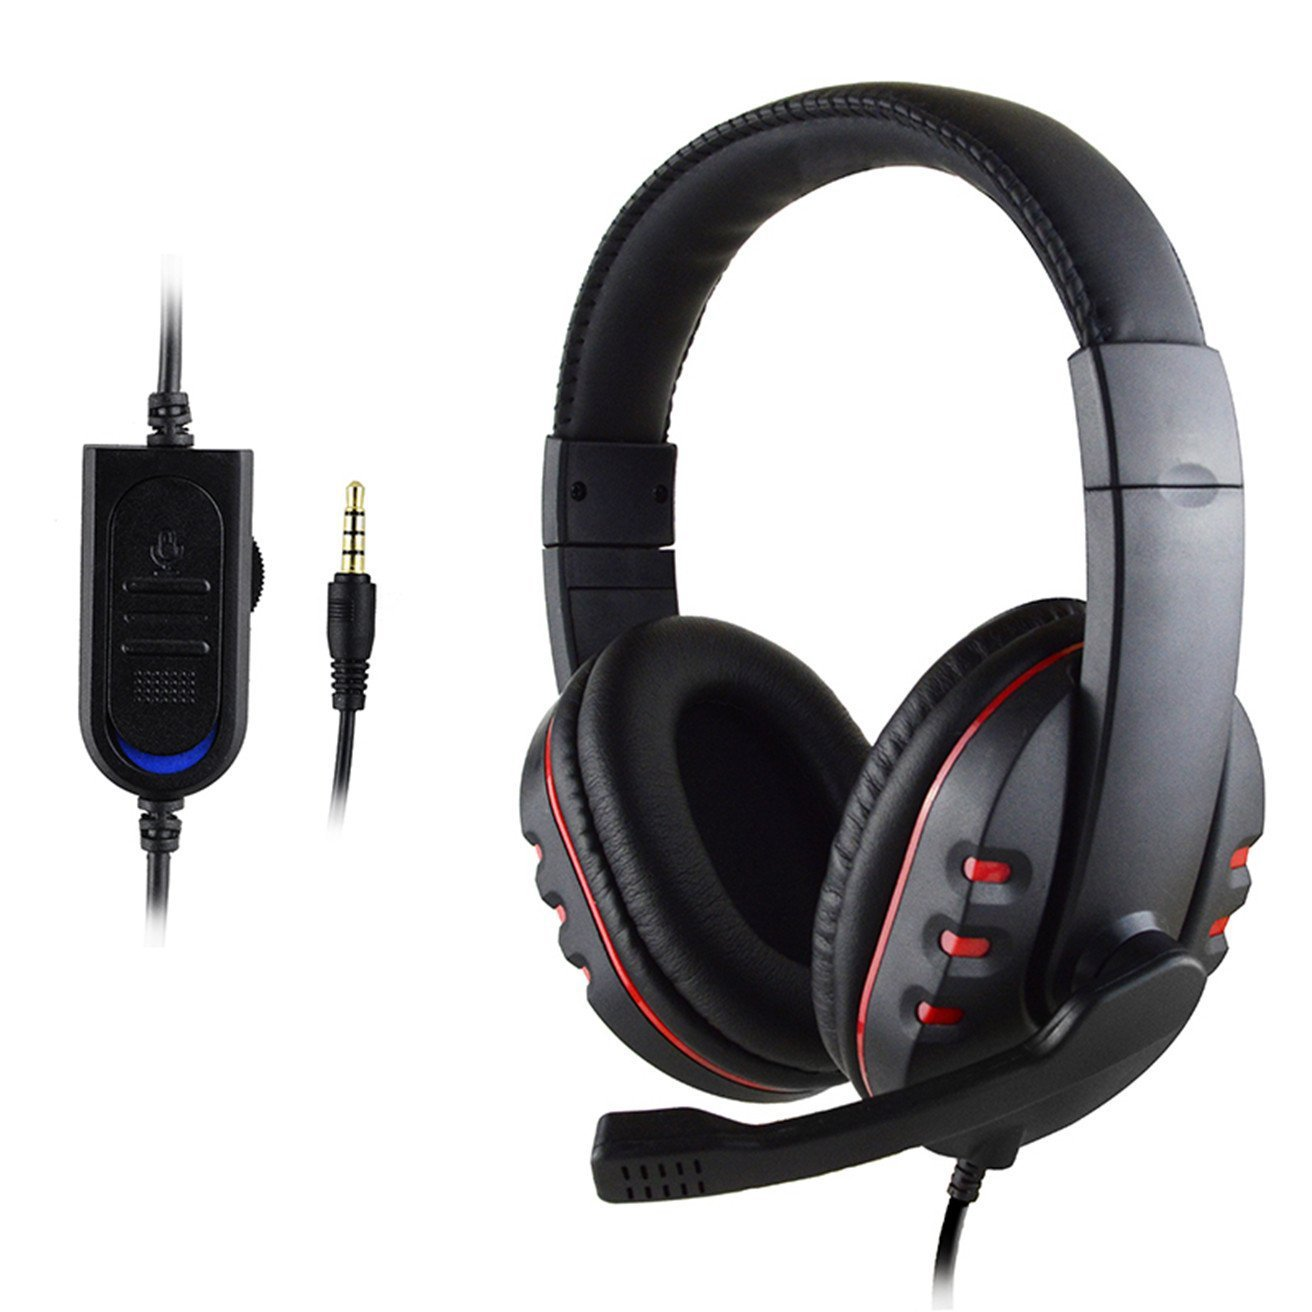 PS4-488 Gaming PS4 XB1 Switch Headphones 3.5 mm with MIC